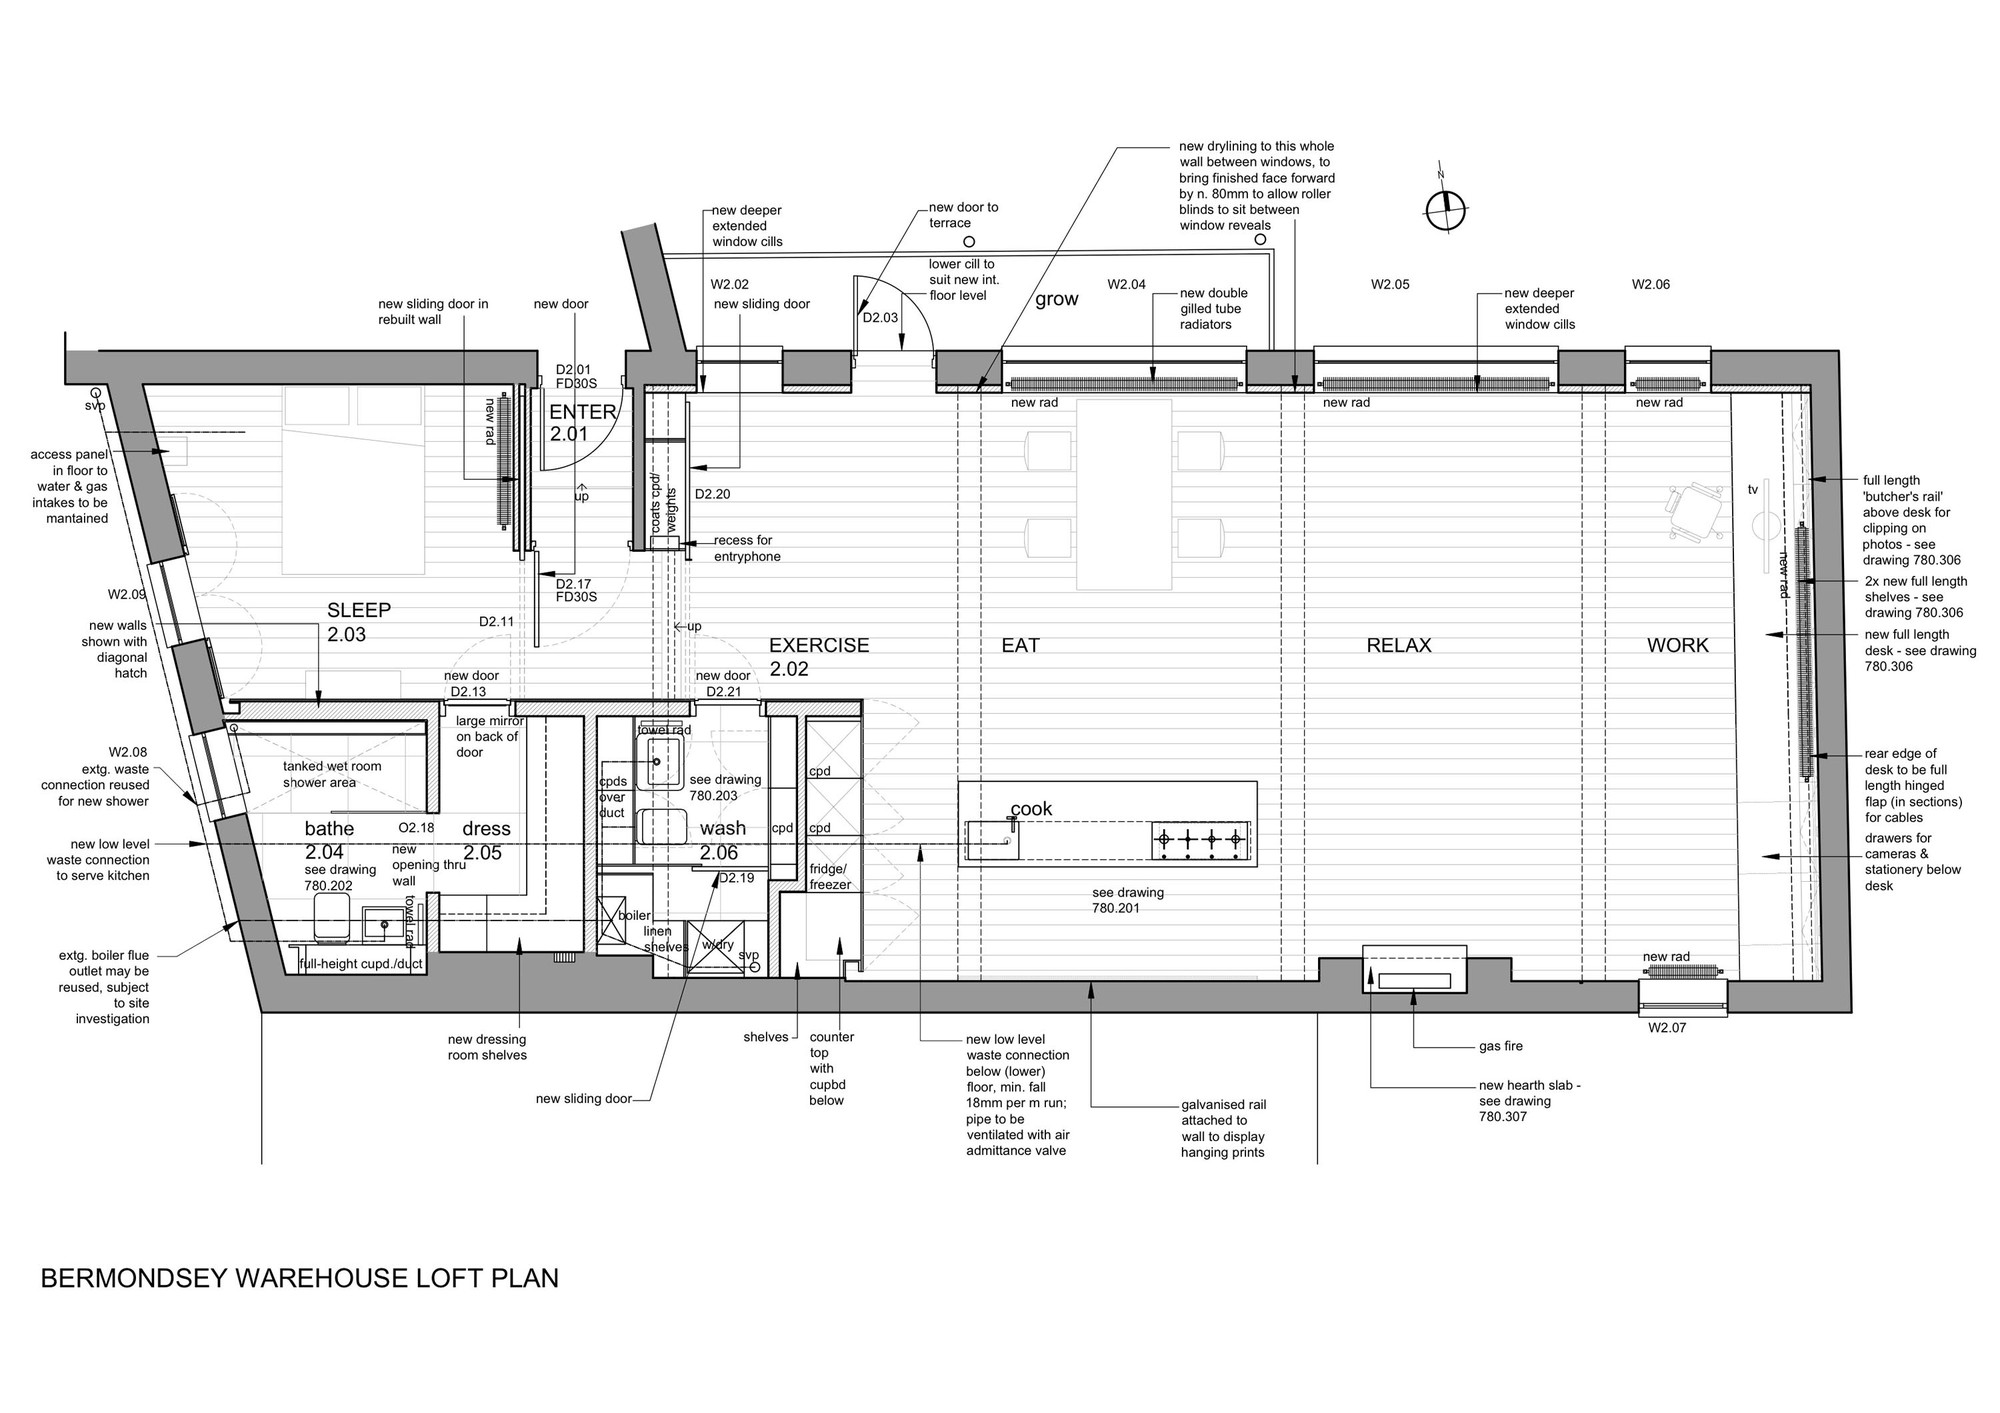 Bermondsey Warehouse Loft Apartment / FORM Design Architecture. 15 / 16. Floor  Plan